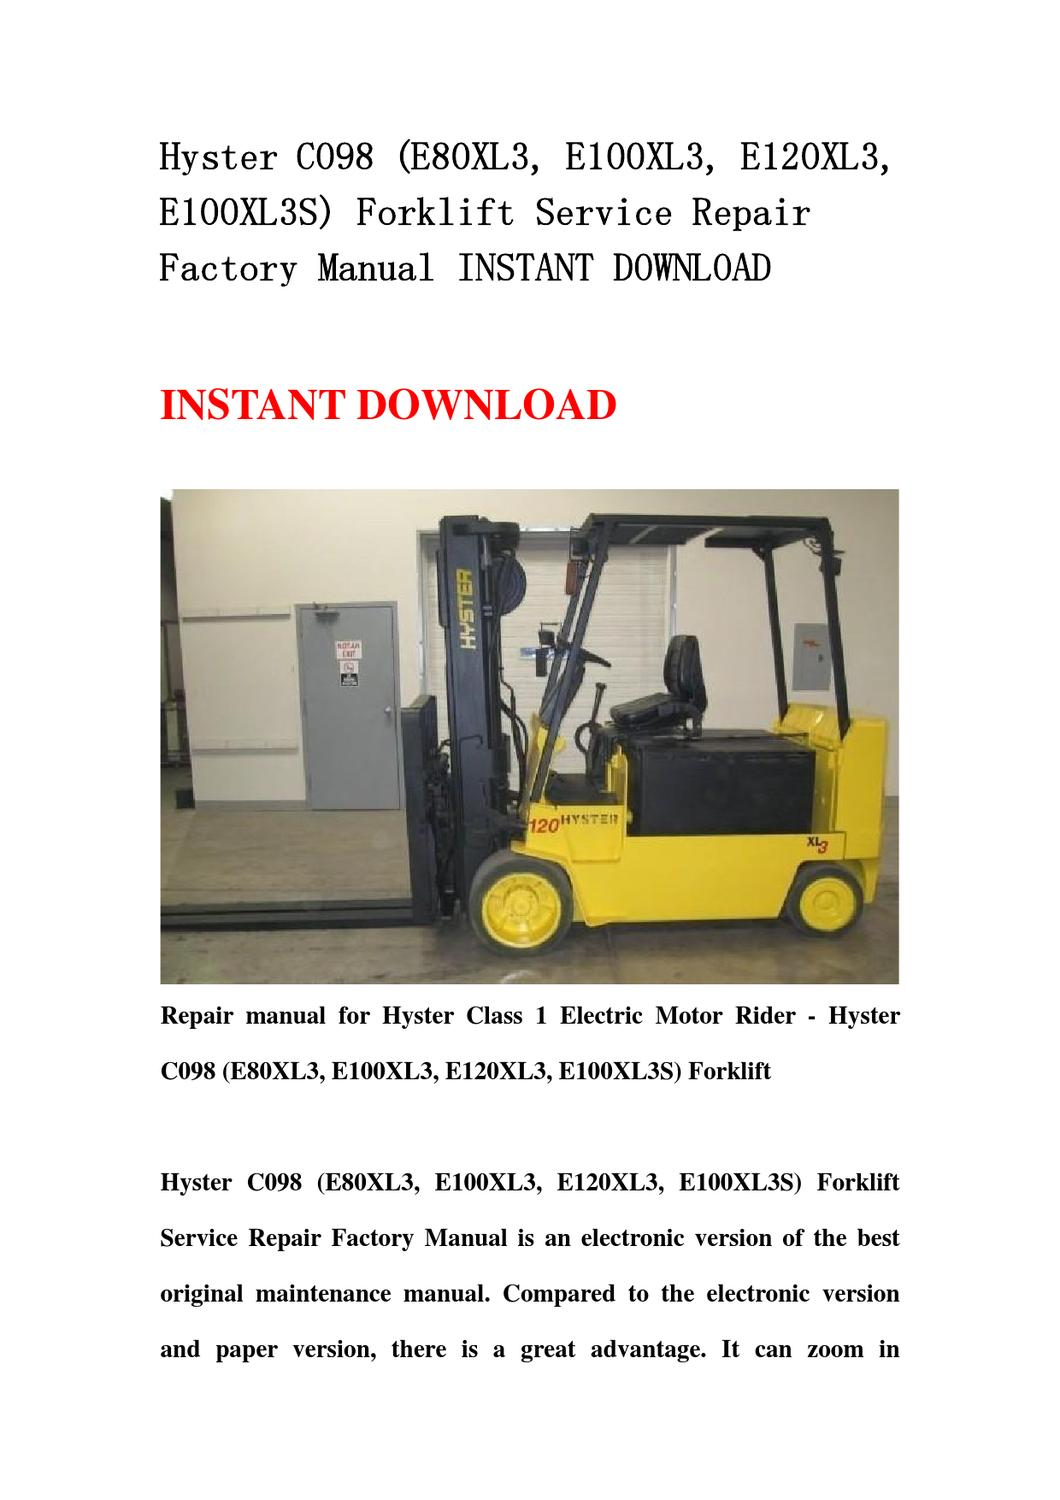 Hyster C098 (E80XL3, E100XL3, E120XL3, E100XL3S) Forklift Service Repair  Factory Manual INSTANT DOWN by yu jiee - issuu